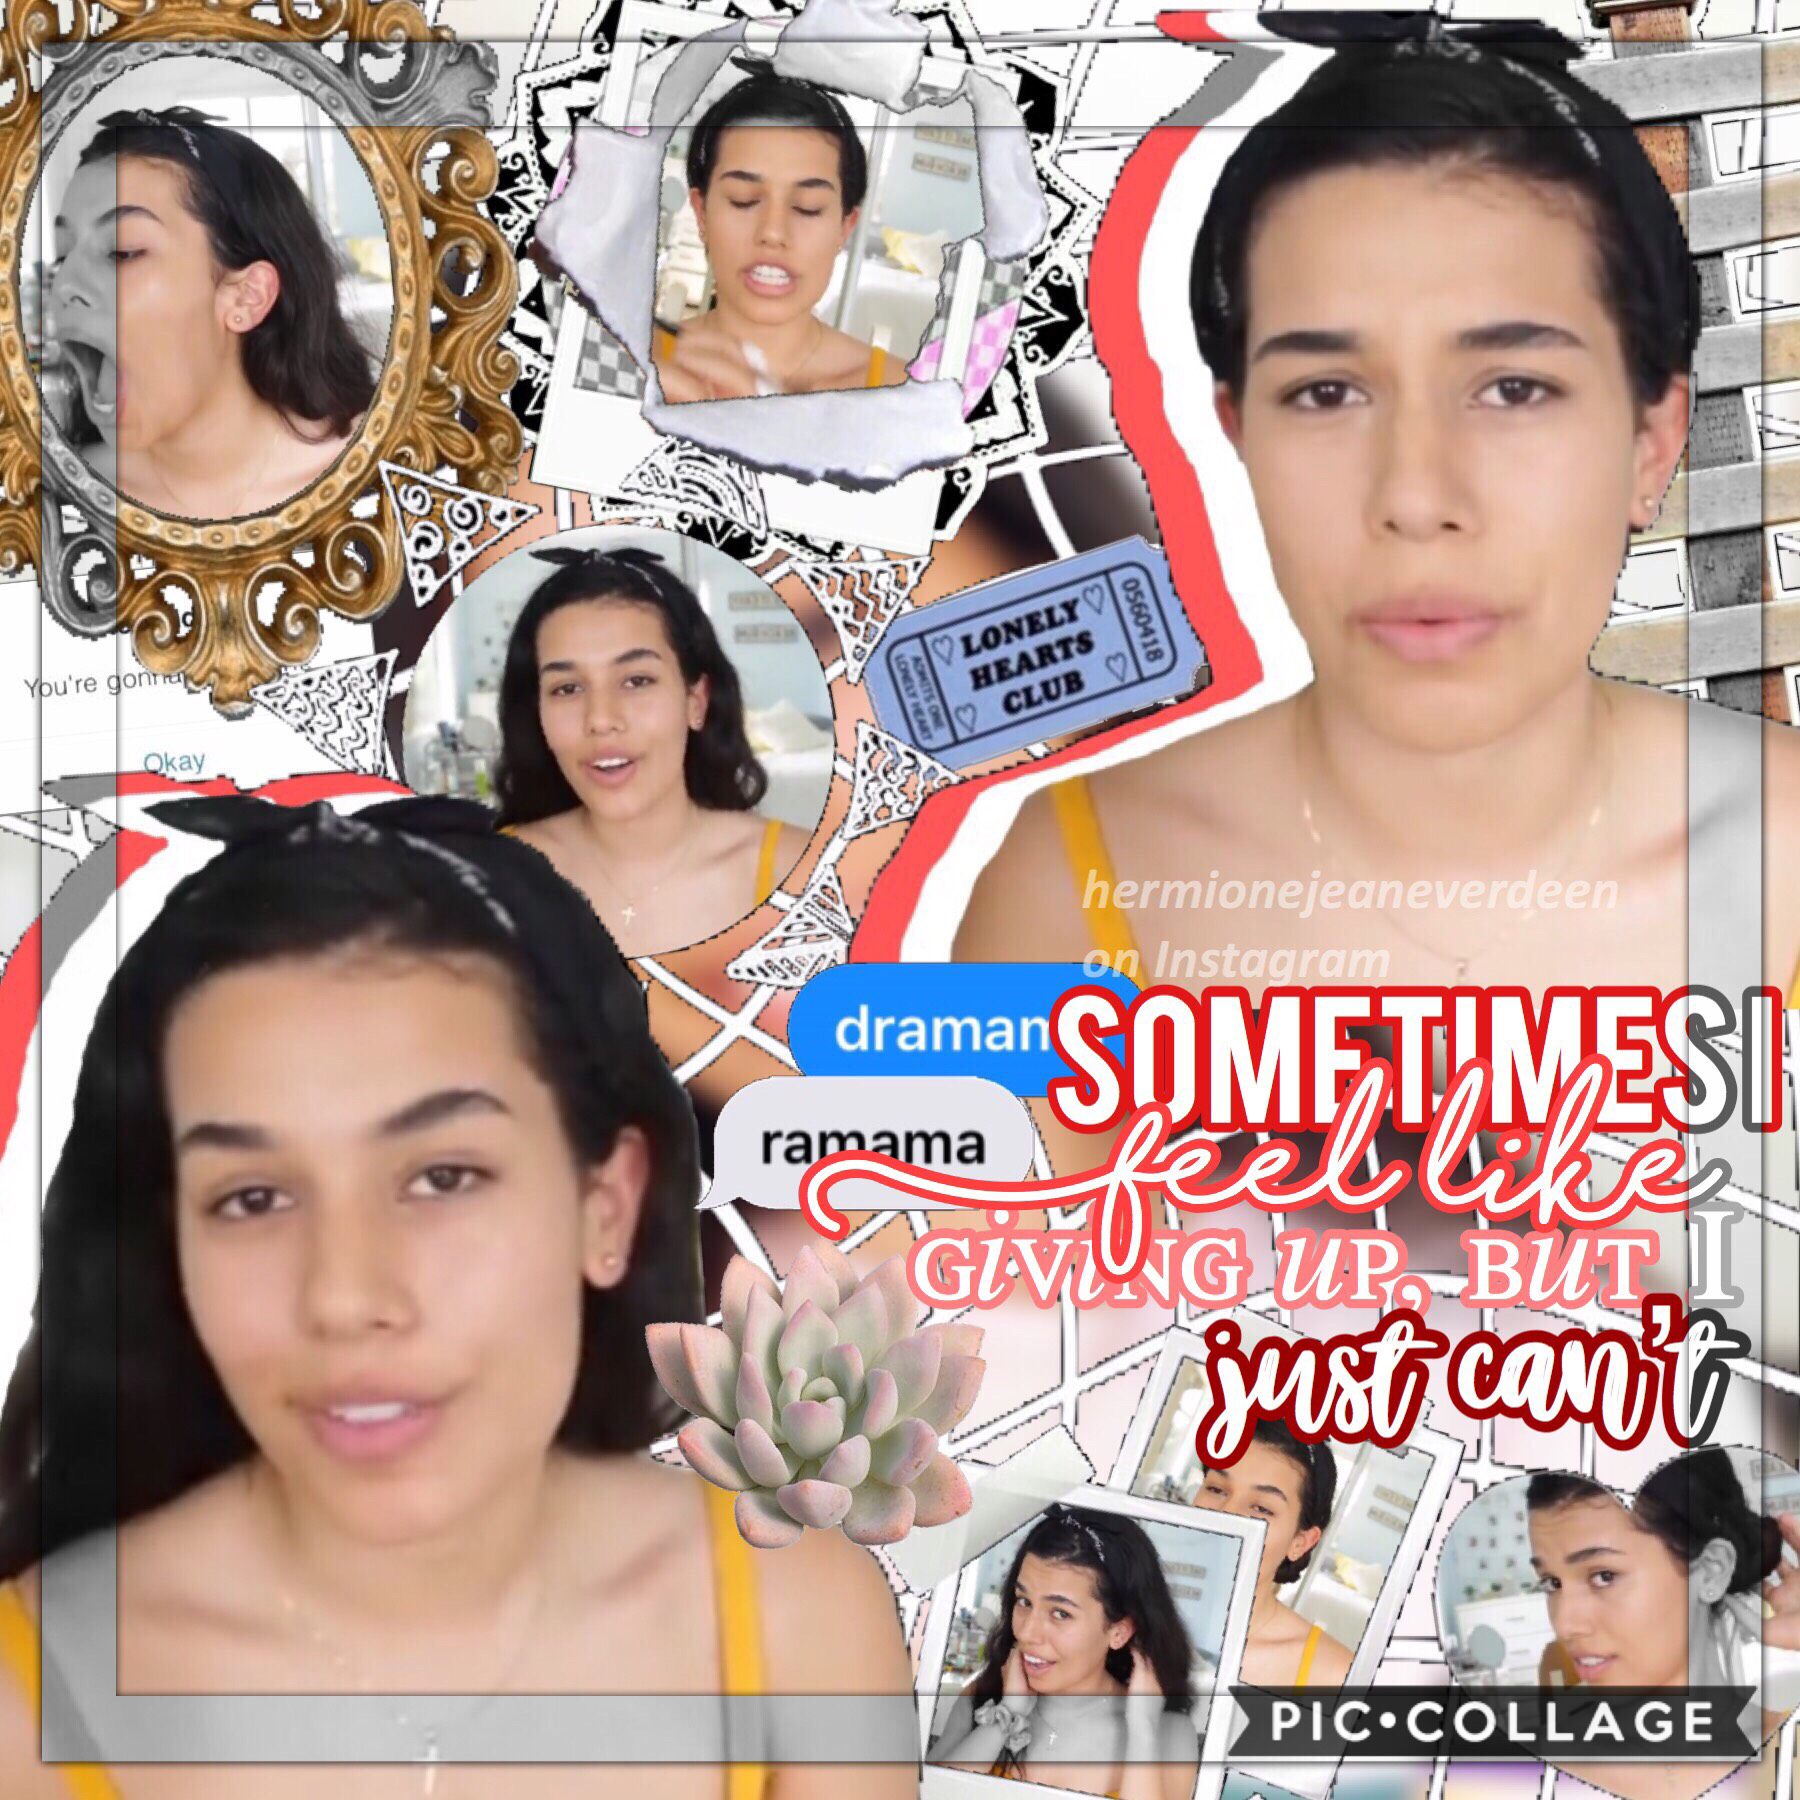 TAP NOW MY FIRST VIDEO IS OUT!!!!!! IT IS SHOWING I HOW I EDIT THIS STYLE OF EDIT!!! my channel is itsnotjustaurora no capitals or spaces. be sure to watch it!❤️ also, this edit is of Ava Jules, she's a smaller YouTuber, be sure to check her out as well!